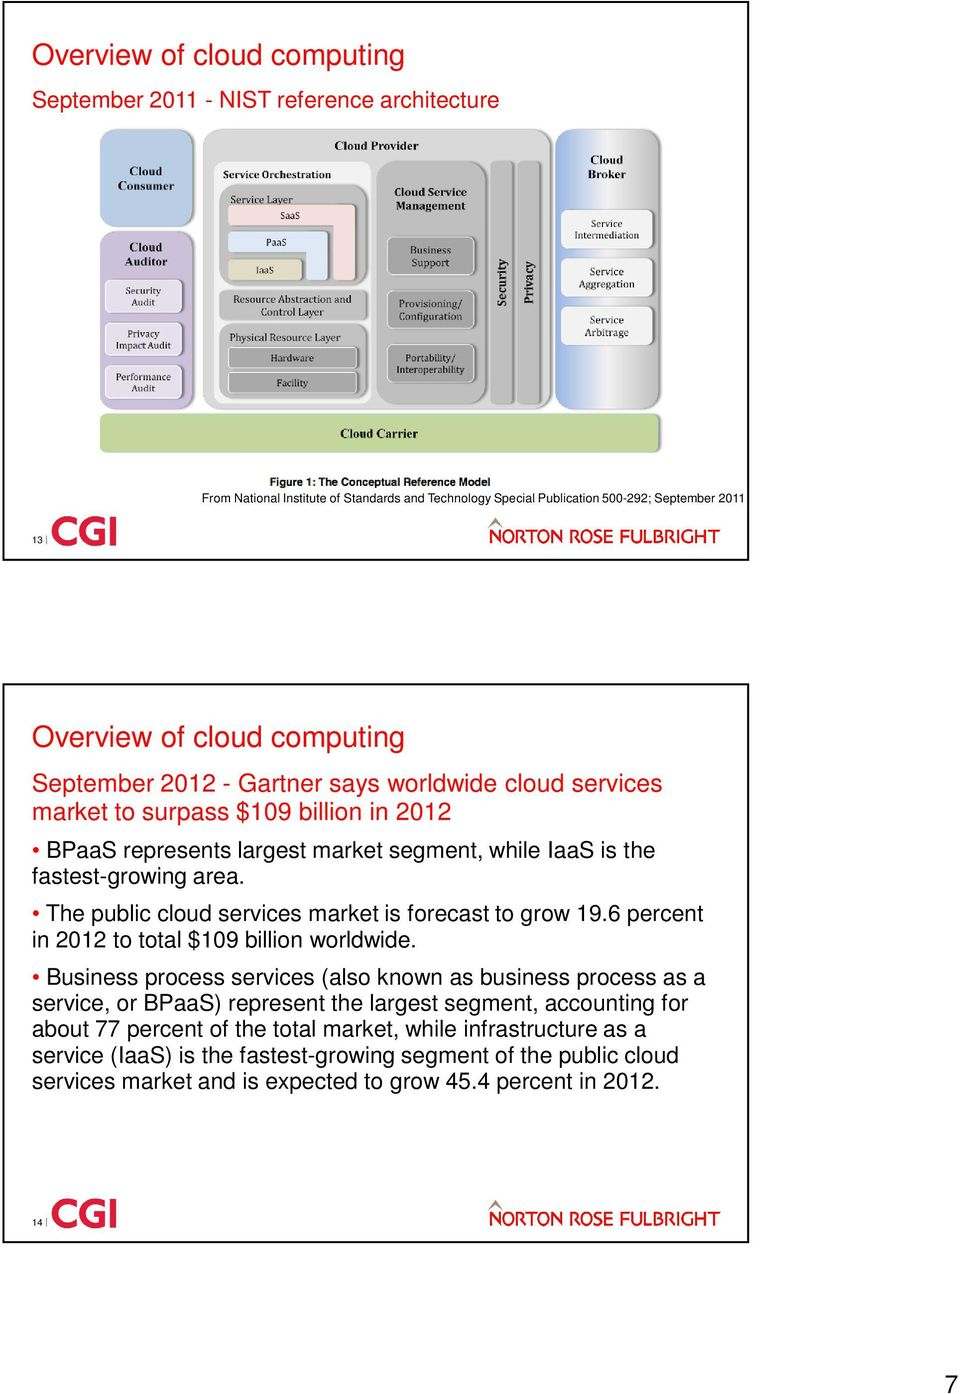 The public cloud services market is forecast to grow 19.6 percent in 2012 to total $109 billion worldwide.